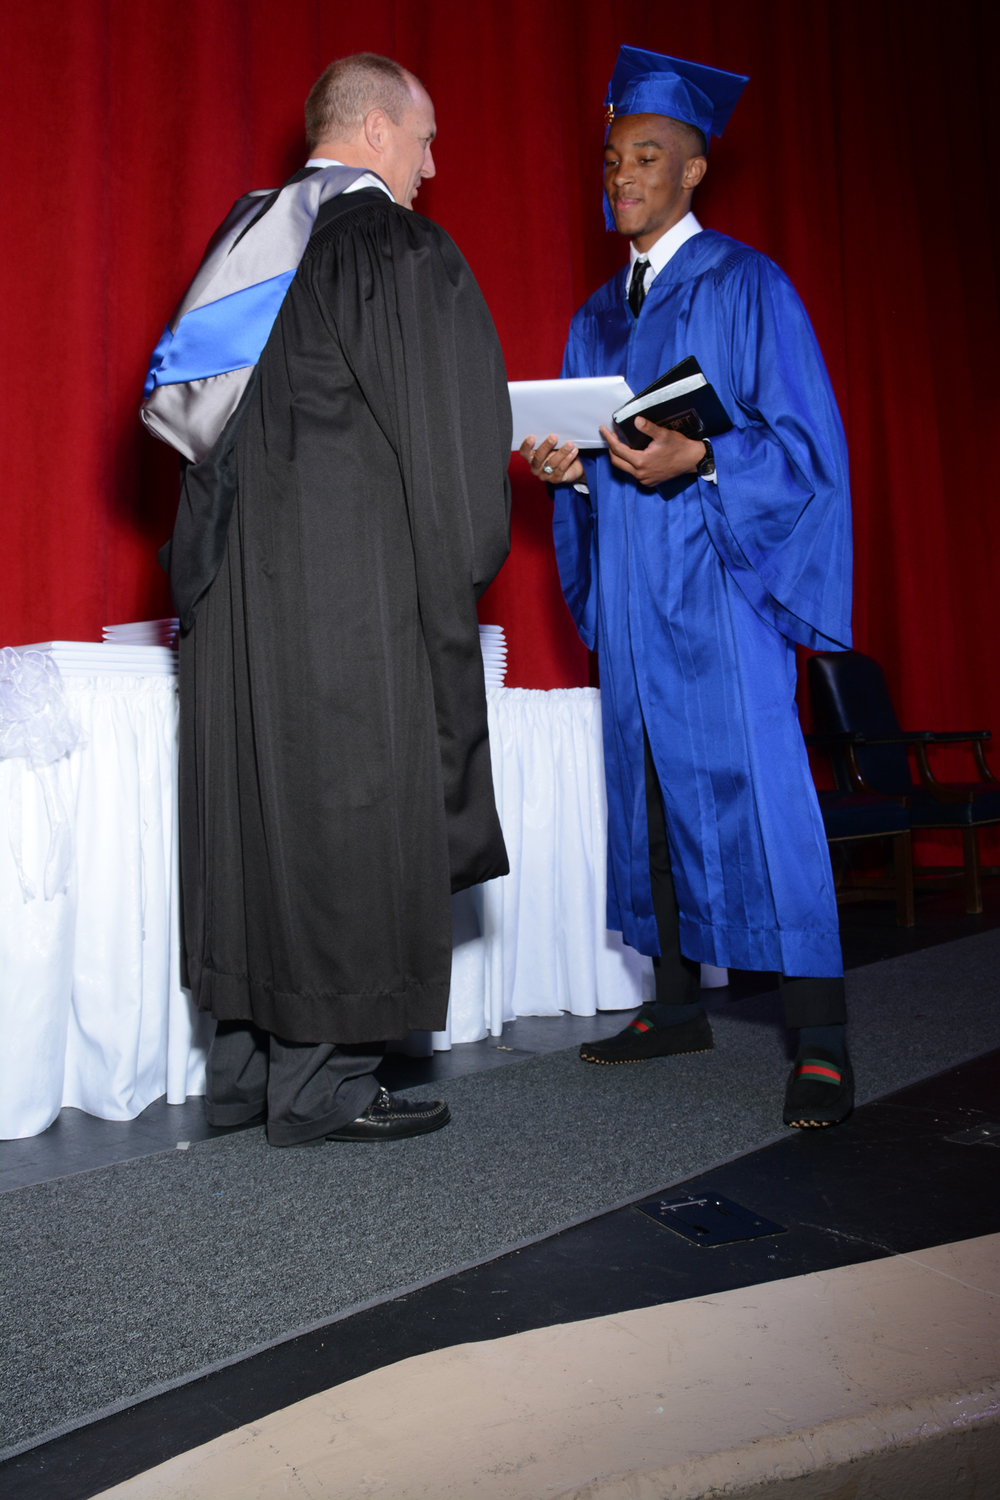 May16 GraduationPhotos115.jpg